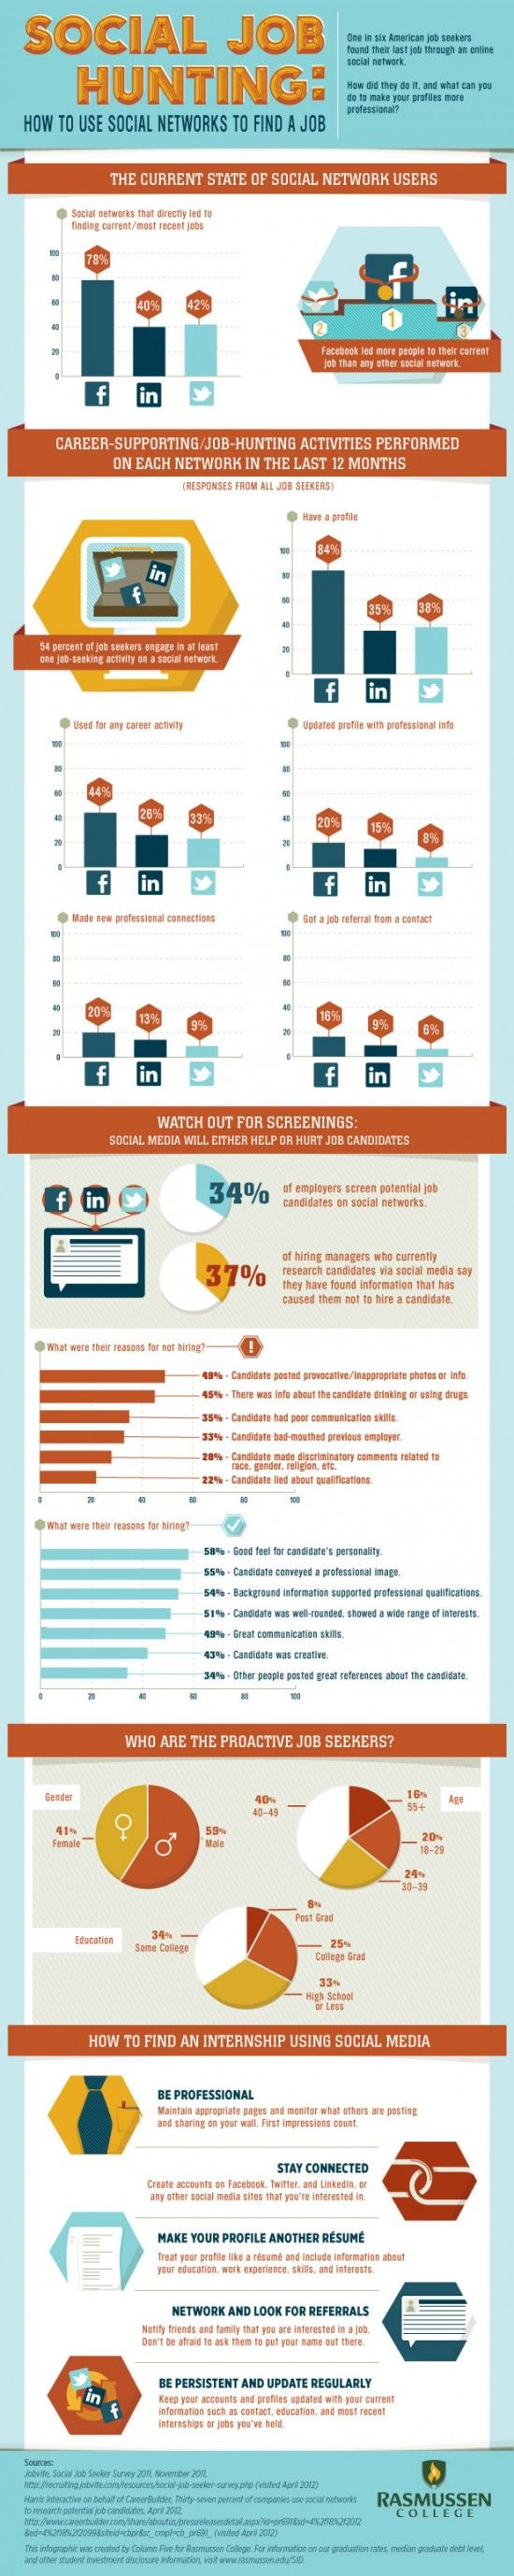 INFOGRAPHIC: HOW TO USE SOCIAL NETWORKS TO FIND A JOB